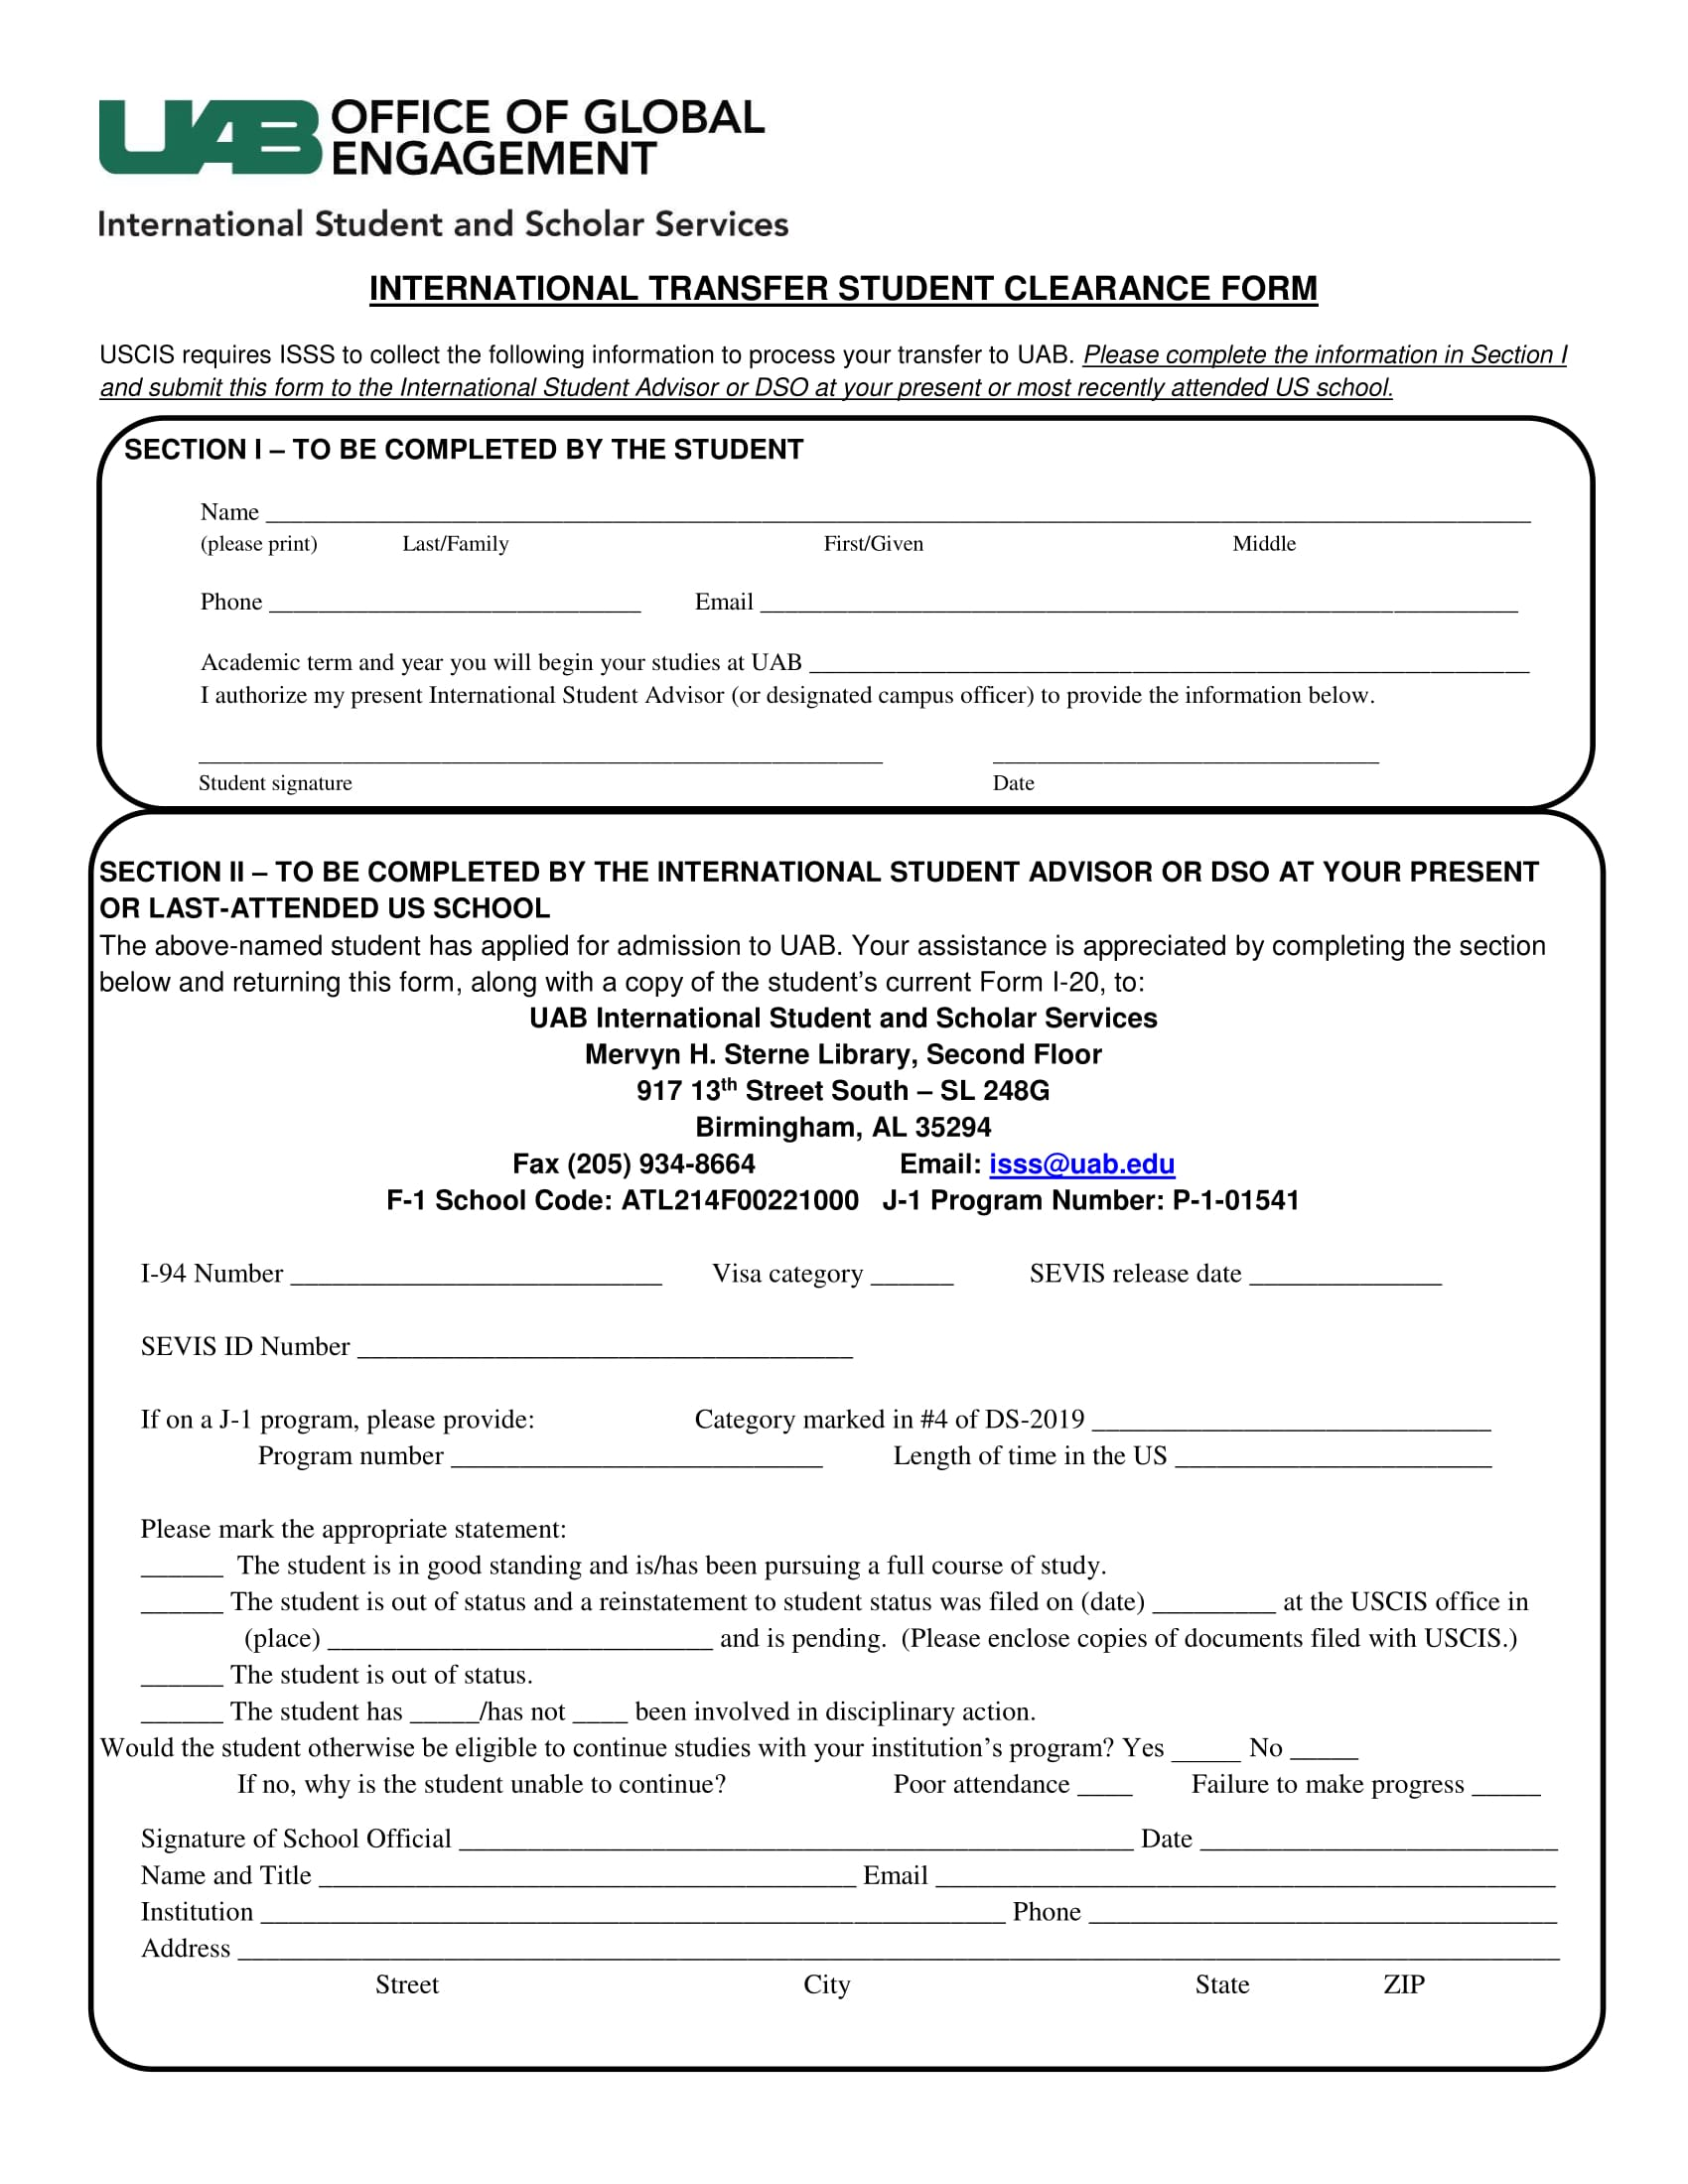 international transfer student clearance form 1